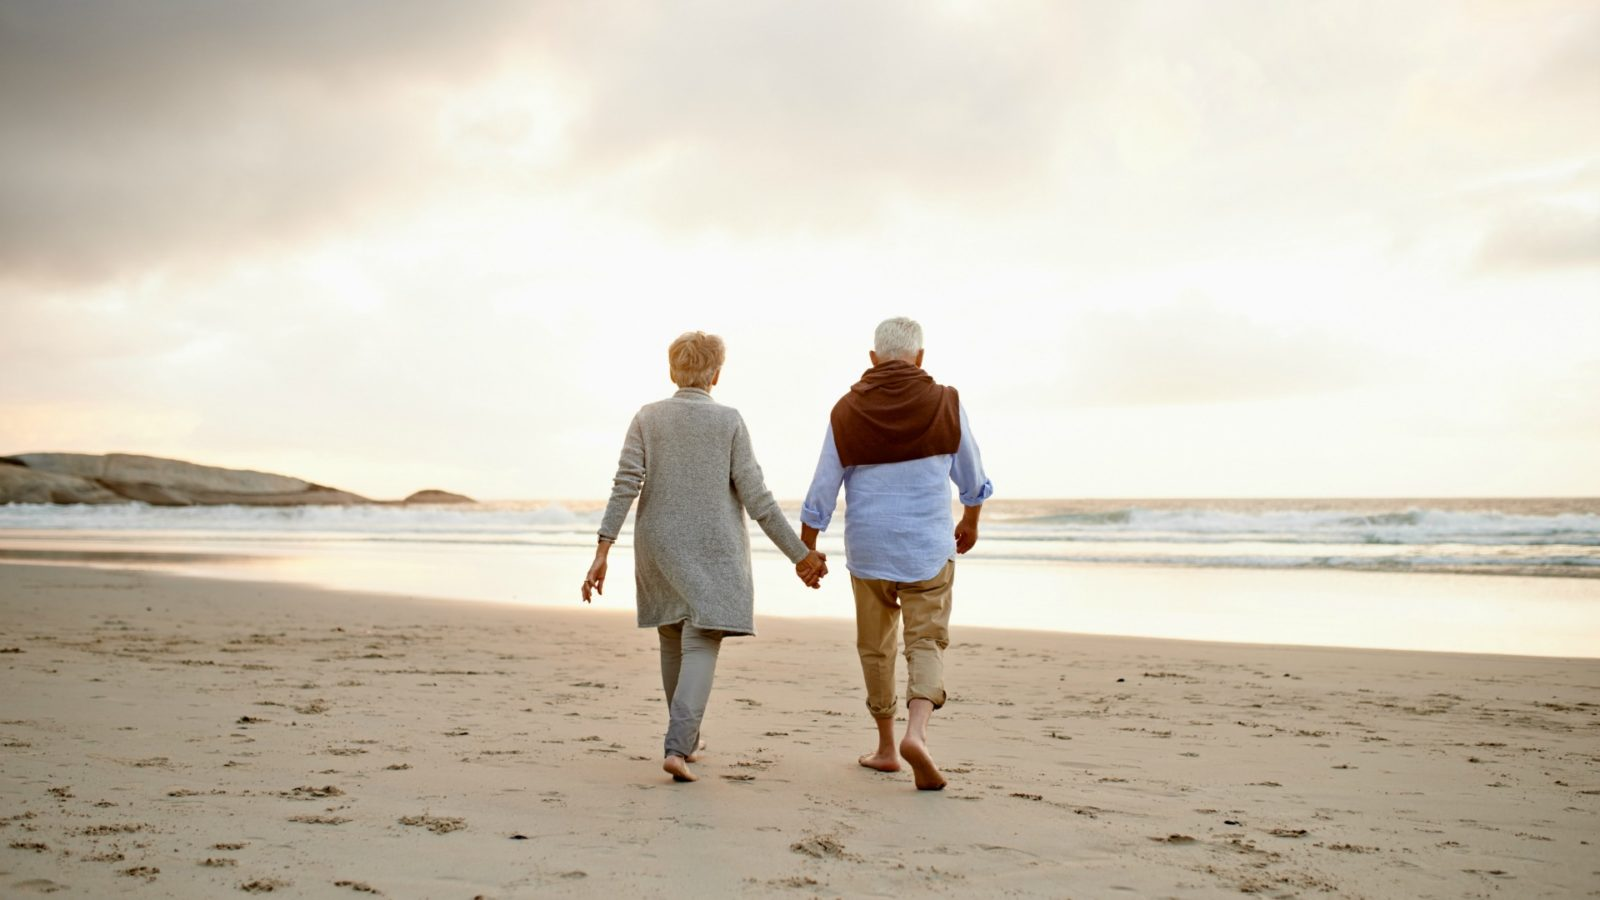 A brisk walk is another easy way Boomers can boost their health.